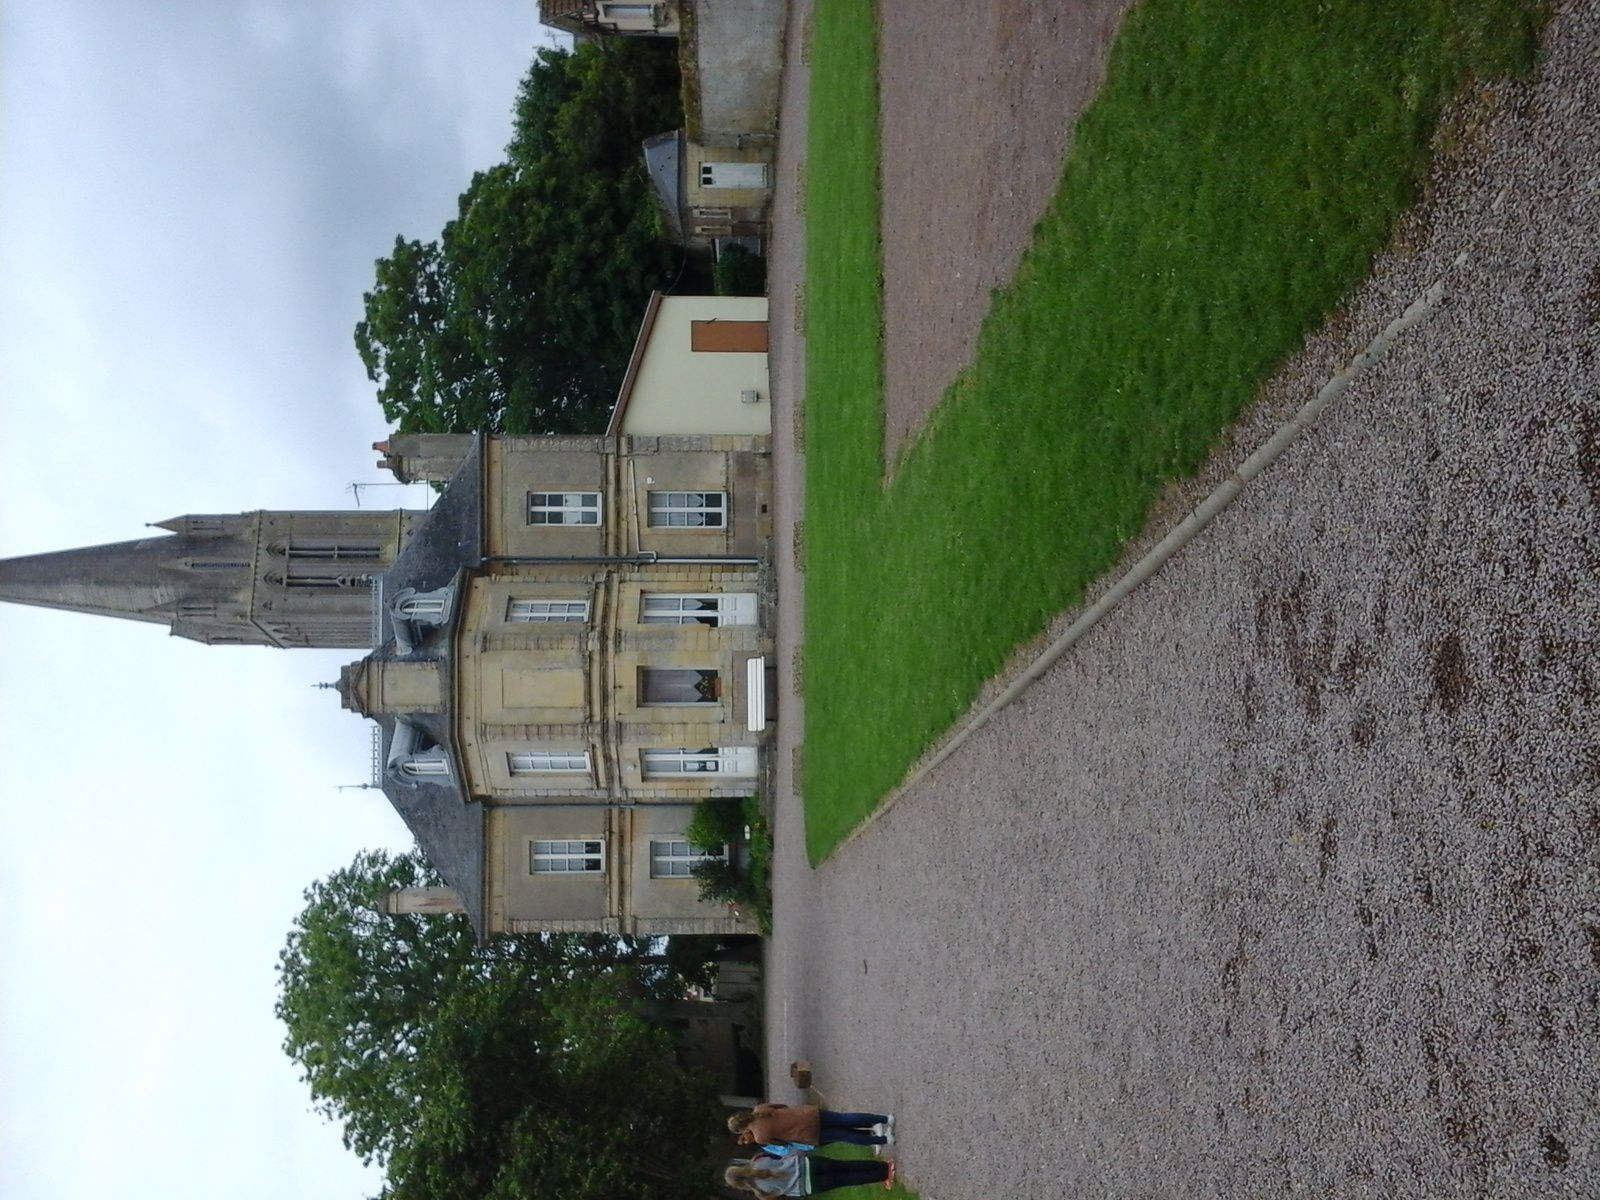 Trip to Normandy - Step 2 : Overnight at Bernières sur Mer